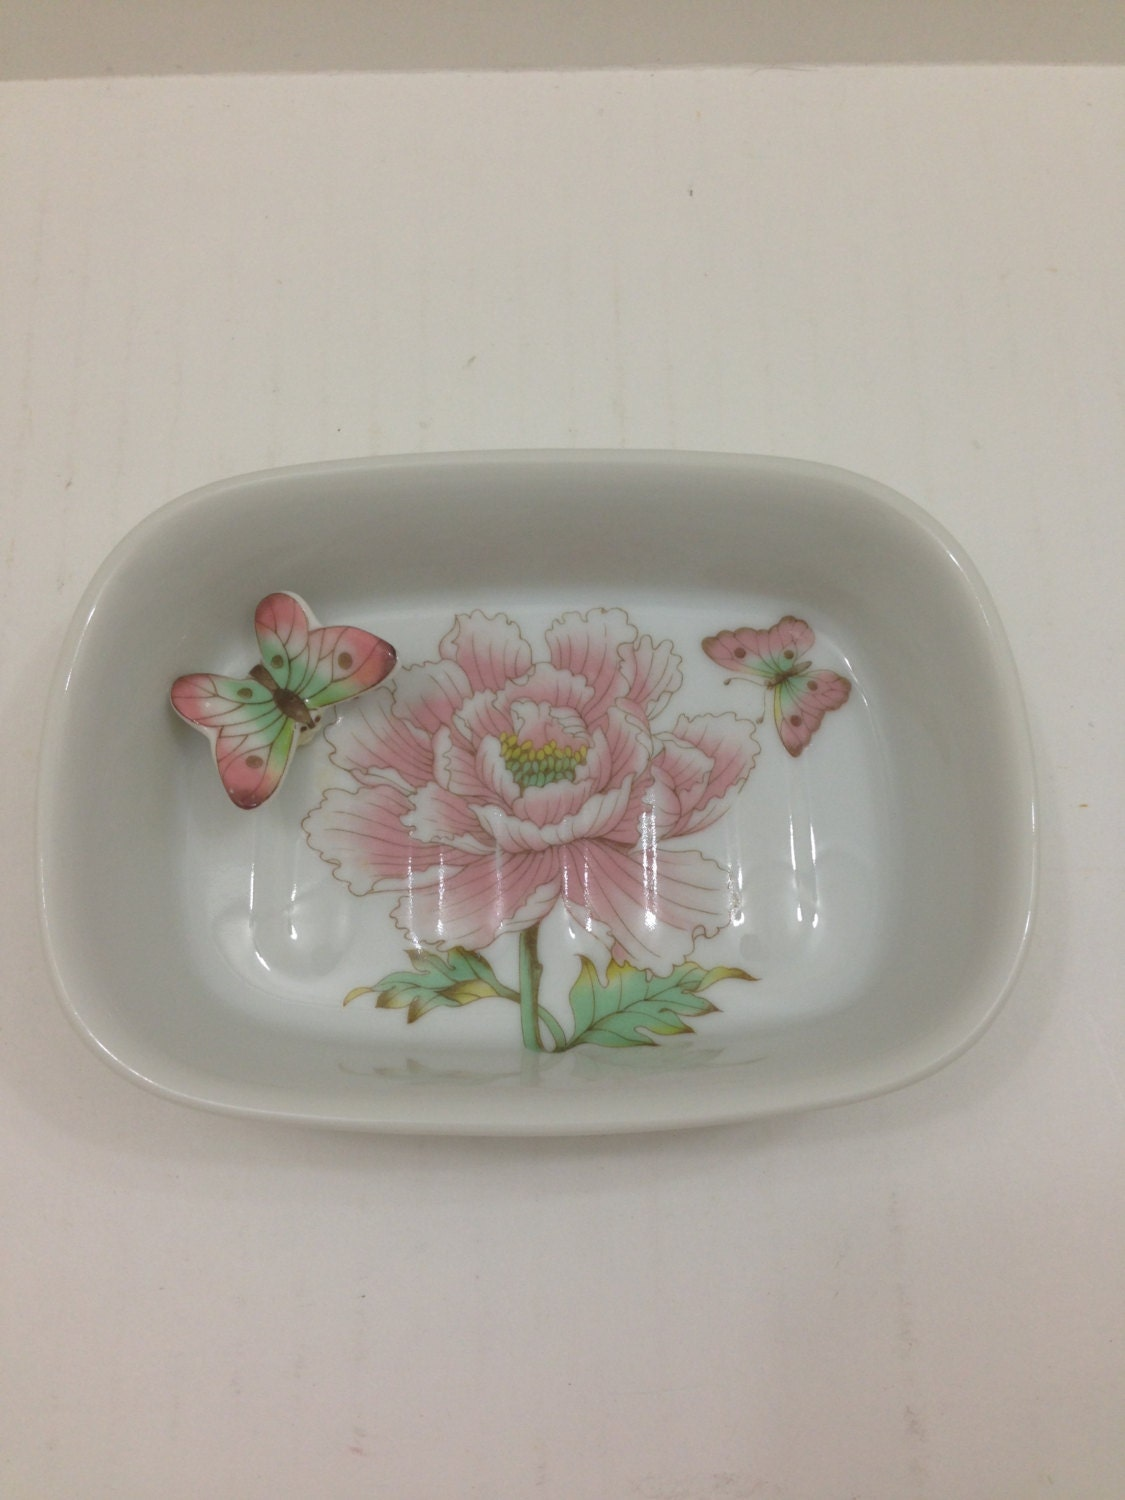 Vintage White Ceramic Soap Dish With Pink Butterflies And